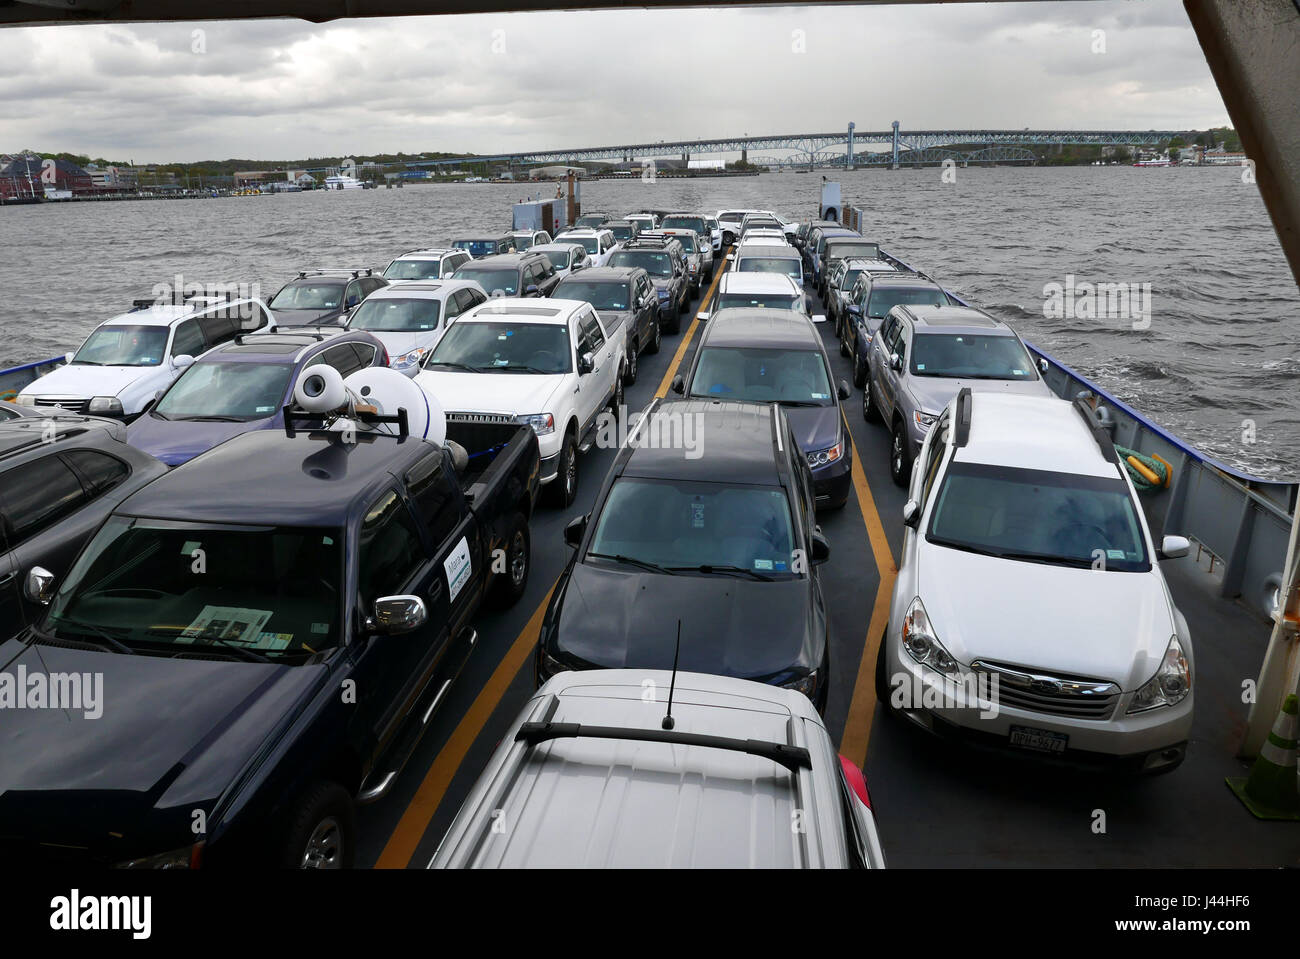 Cars on the Cross Sound Ferry leaving New London for Orient Point Long Island. The bridge is route I 95. - Stock Image